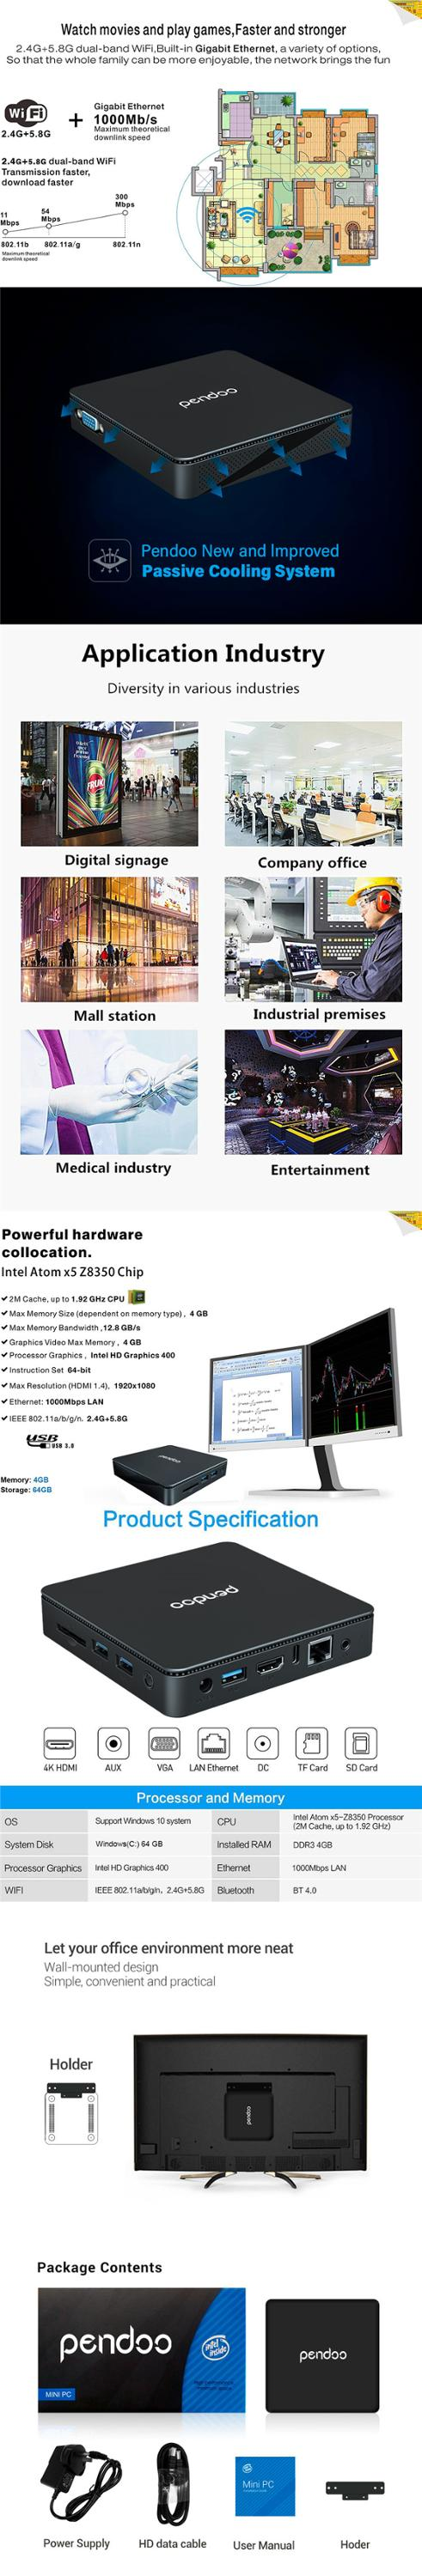 pendoo TX85 Mini PC z8350 4GB DDR4 RAM 64GB ROM 5G WiFi BT 4.0 1000M LAN set top box